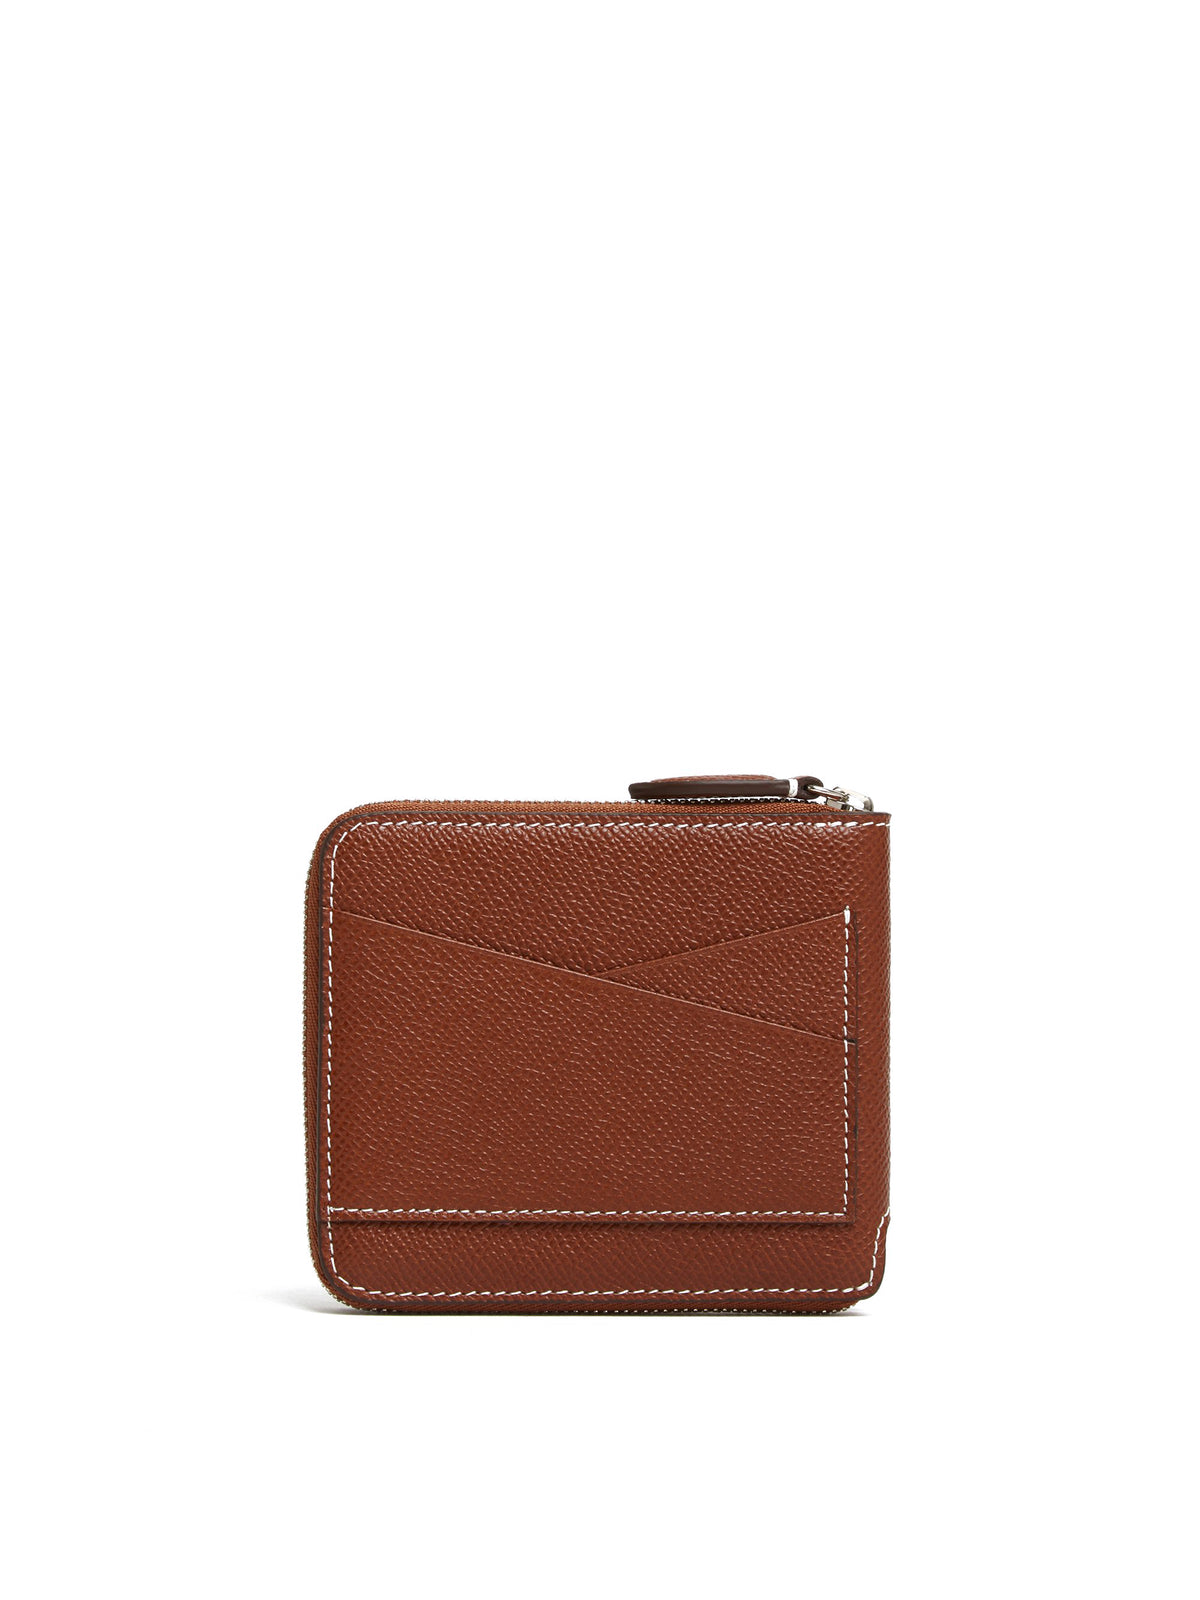 Mark Cross Bi-Fold Leather Zip Wallet Saffiano Acorn Back